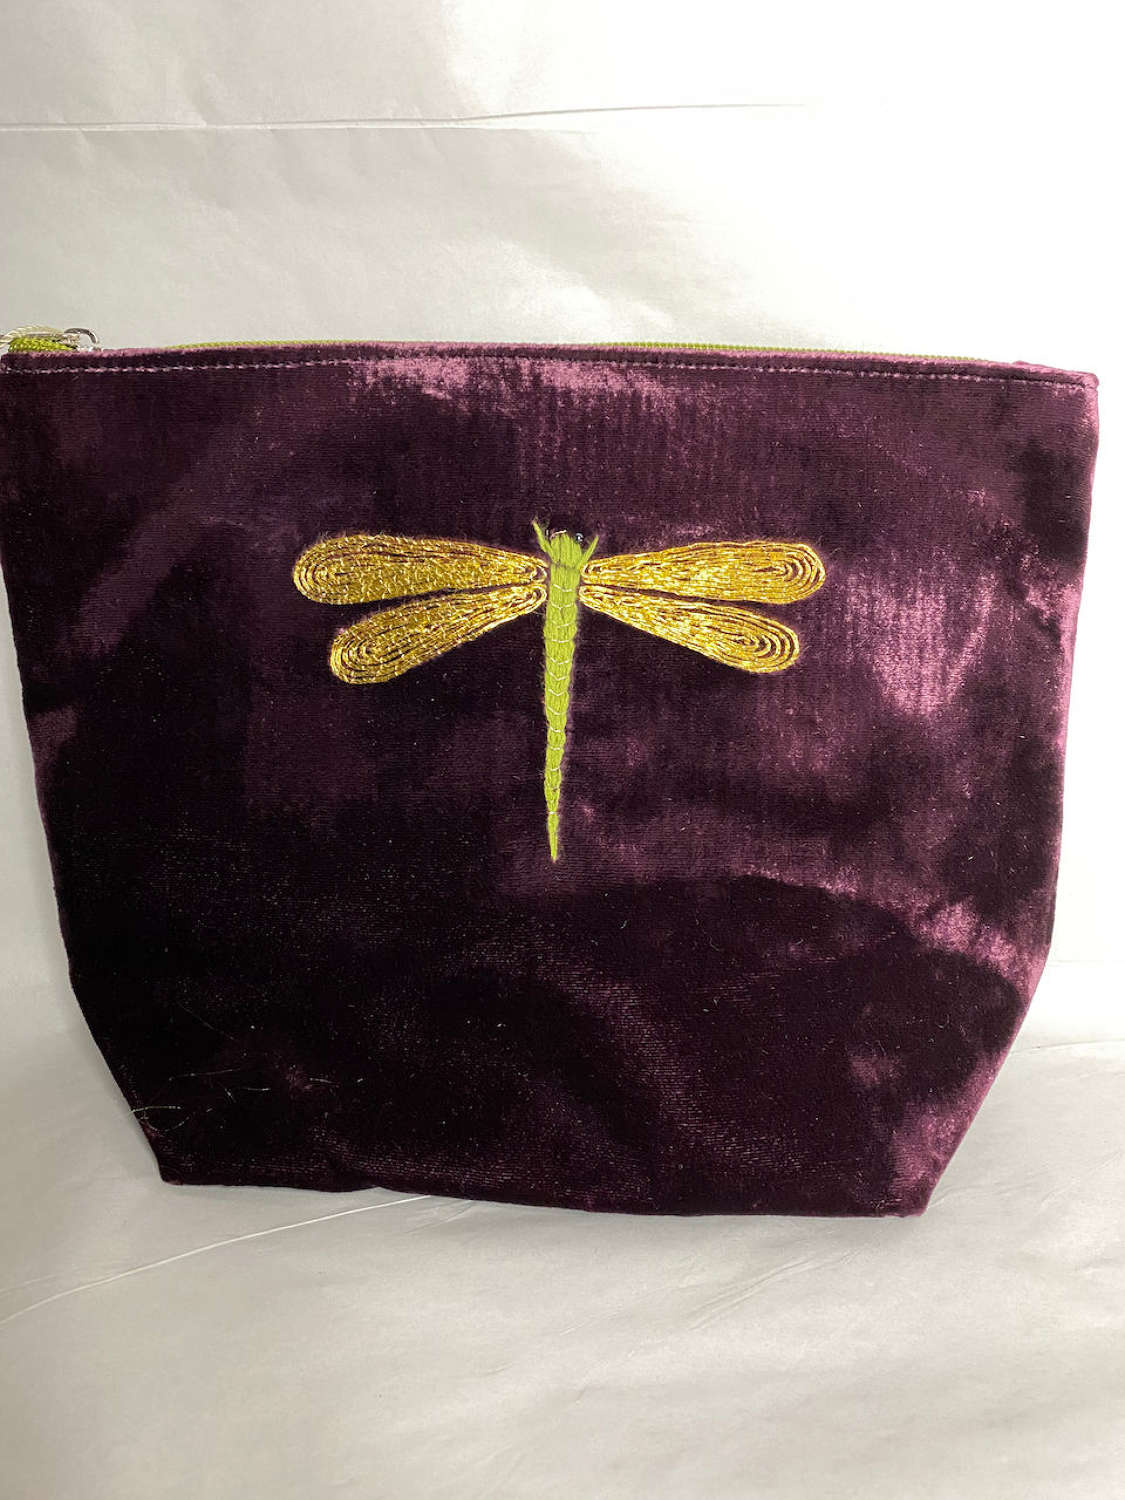 Large embroidered make up bag with floral fabric lining